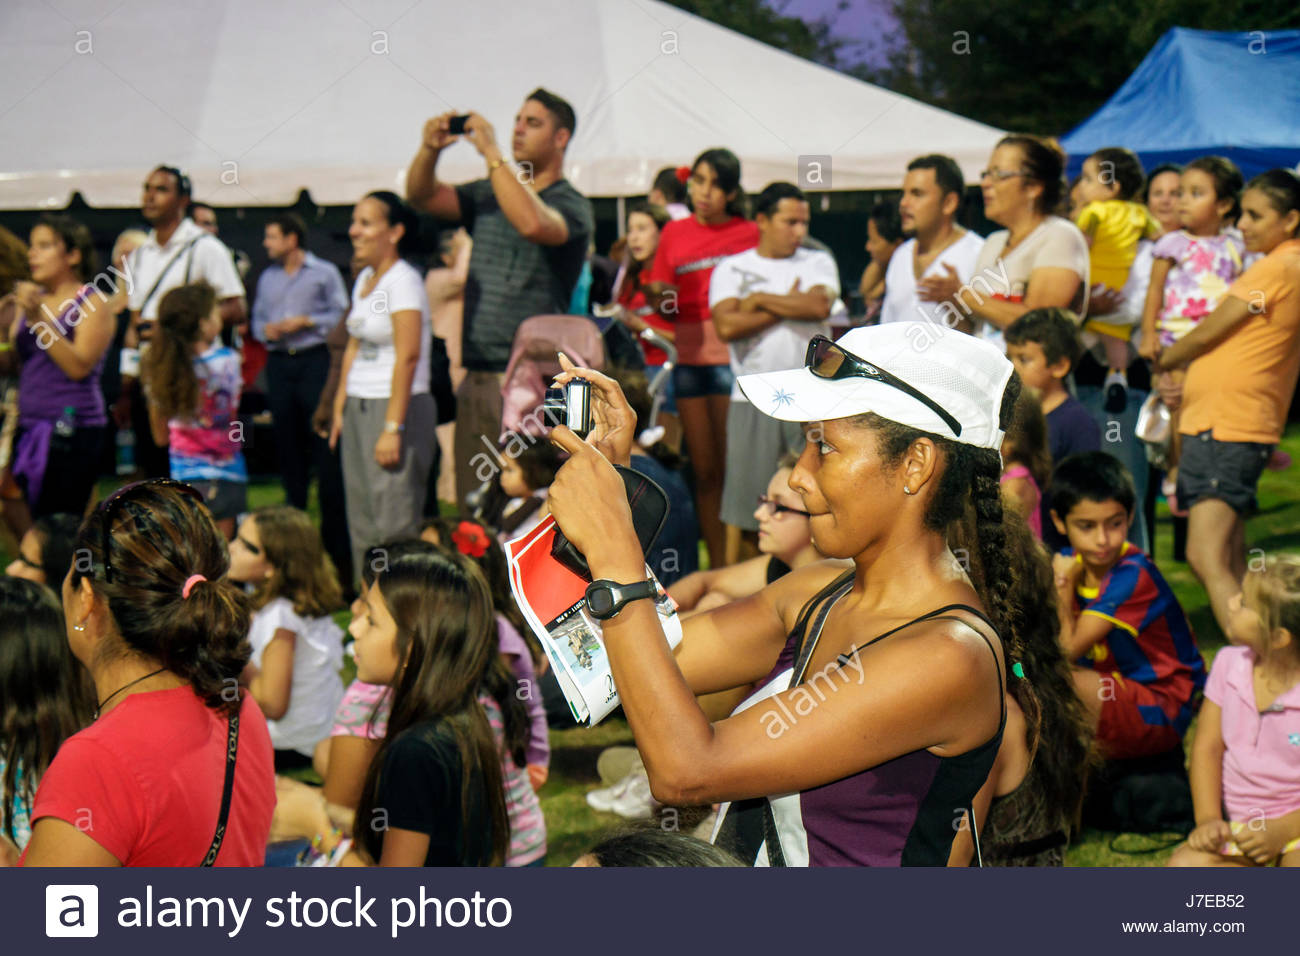 Miami Beach Florida North Beach Northshore Park Hispanic Heritage Festival audience Black woman camera taking picture - Stock Image